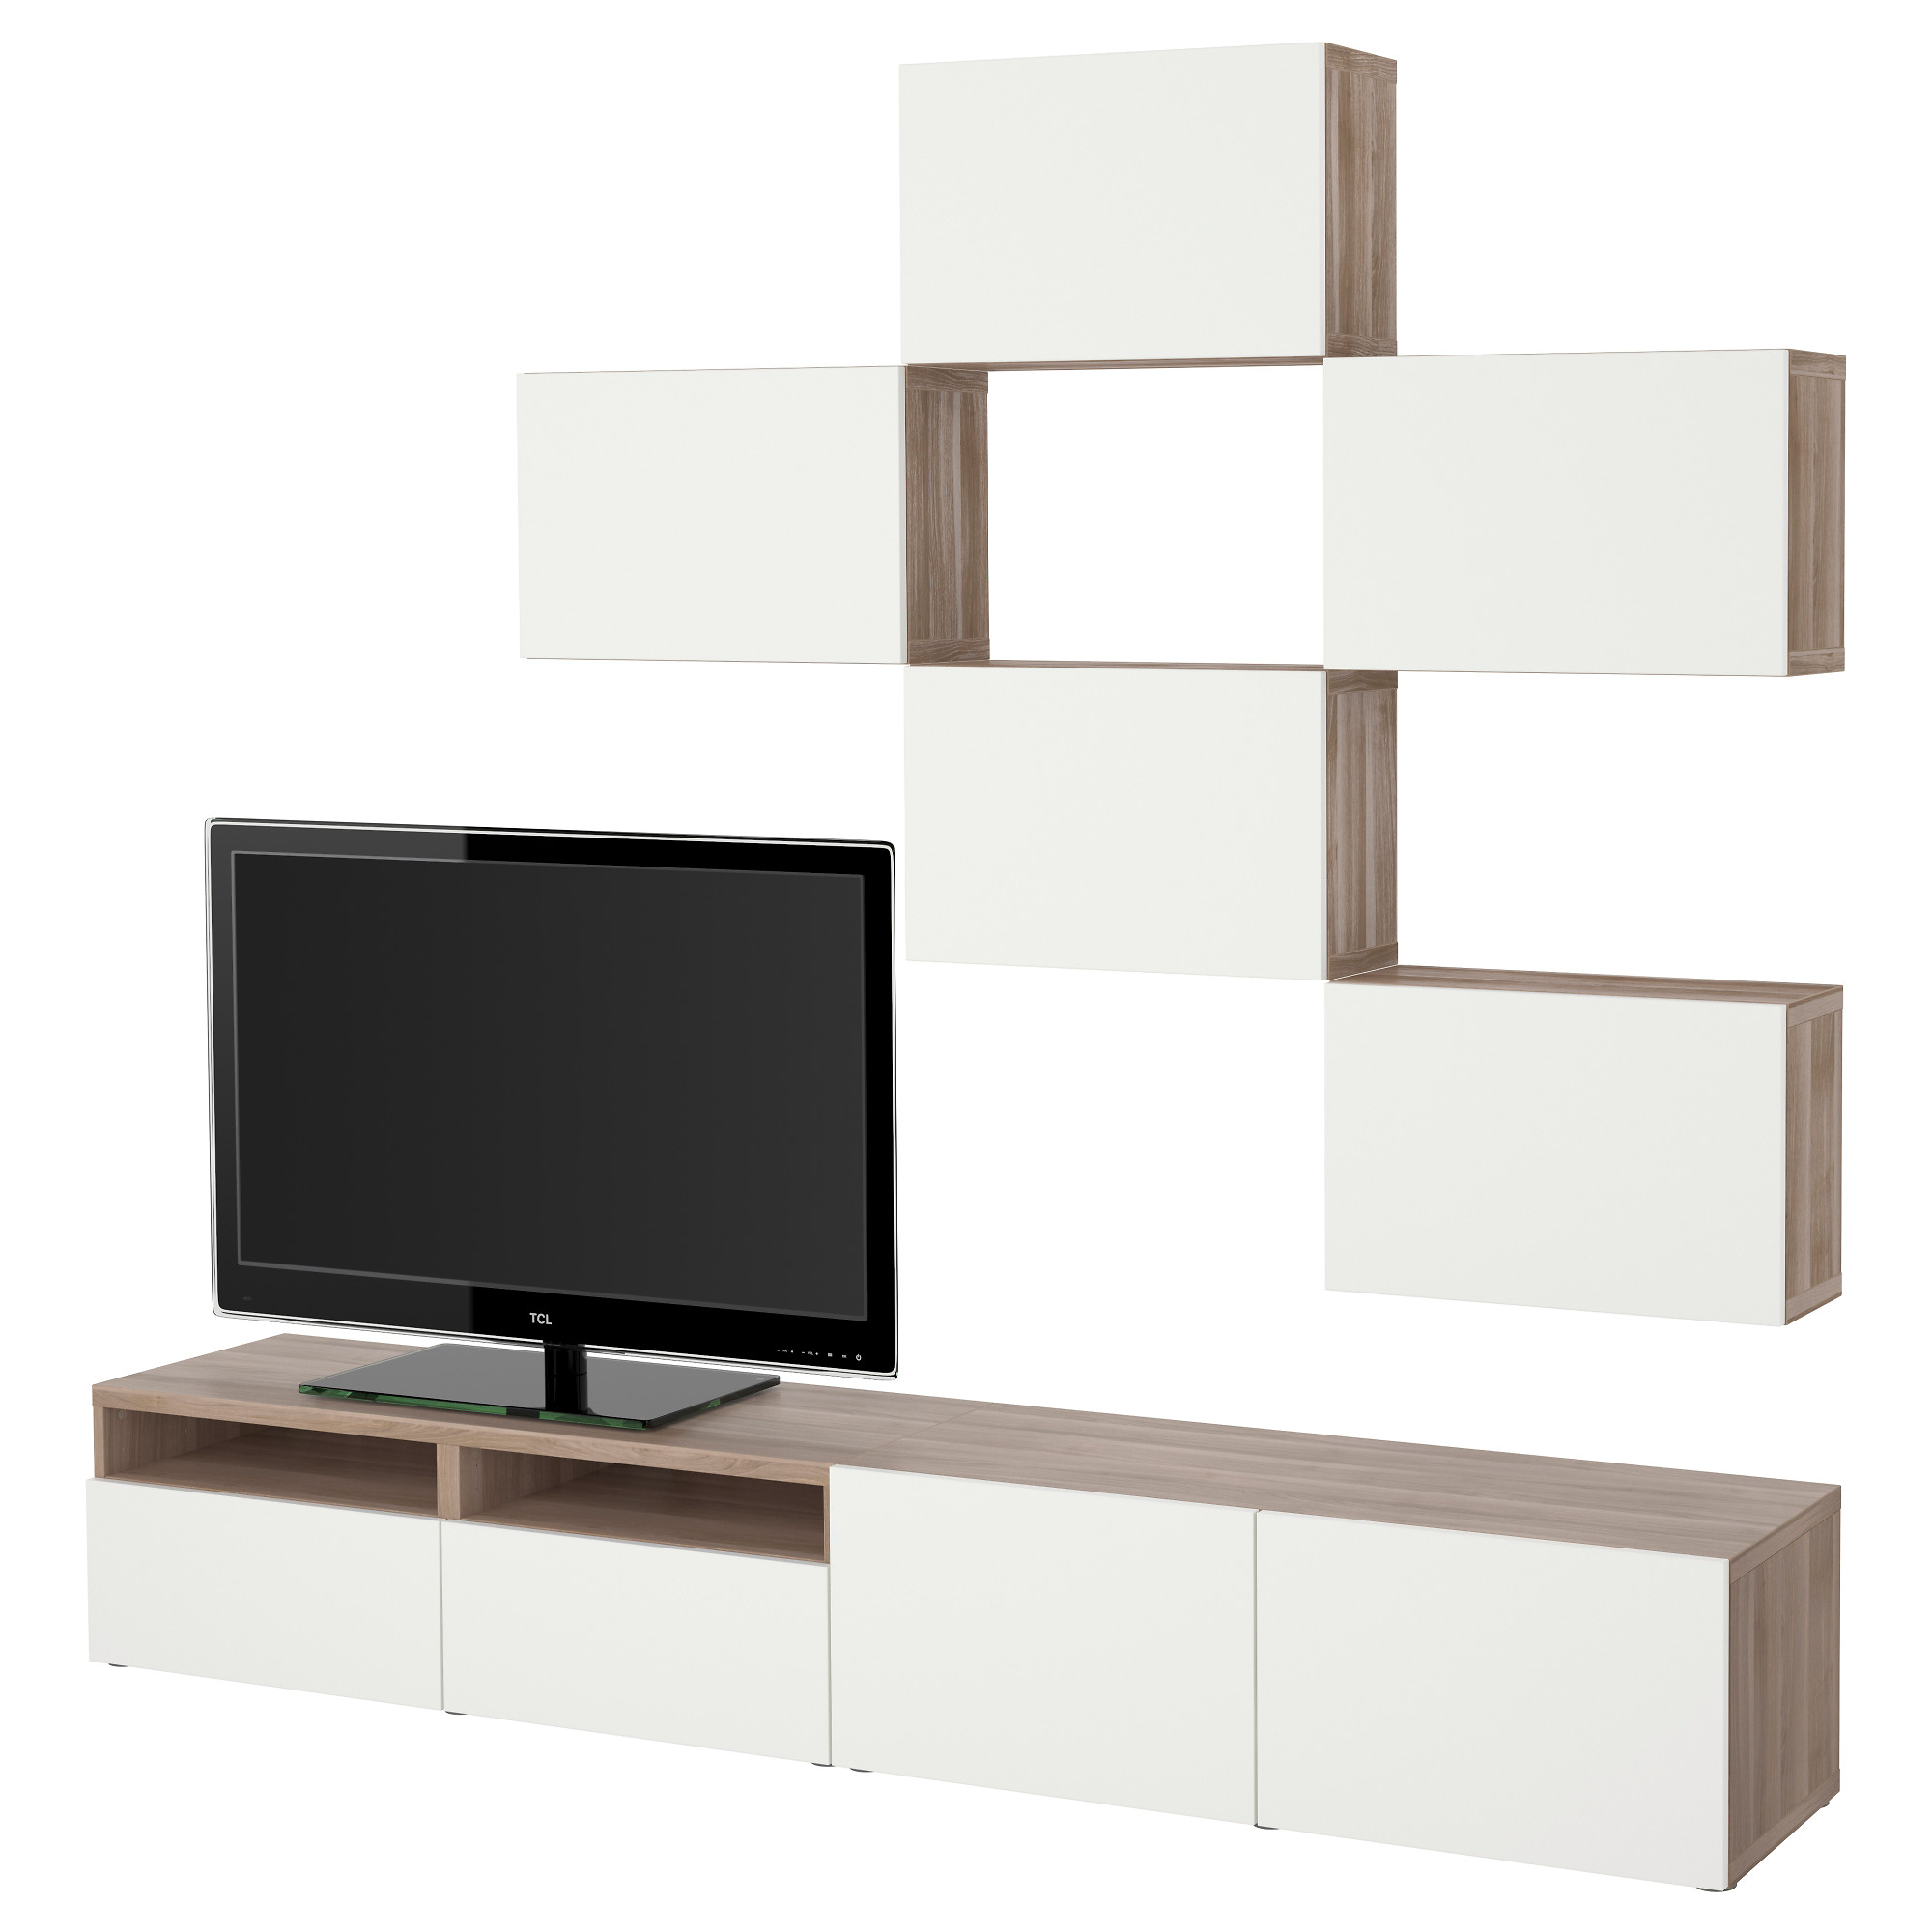 Meuble Ikea Tv - Best Tv Storage Combination Grey Stained Walnut Effect [mjhdah]http://www.ikea.com/be/fr/images/products/tomn%C3%A4s-meuble-tv-brun-noir__0381860_pe557461_s5.jpg